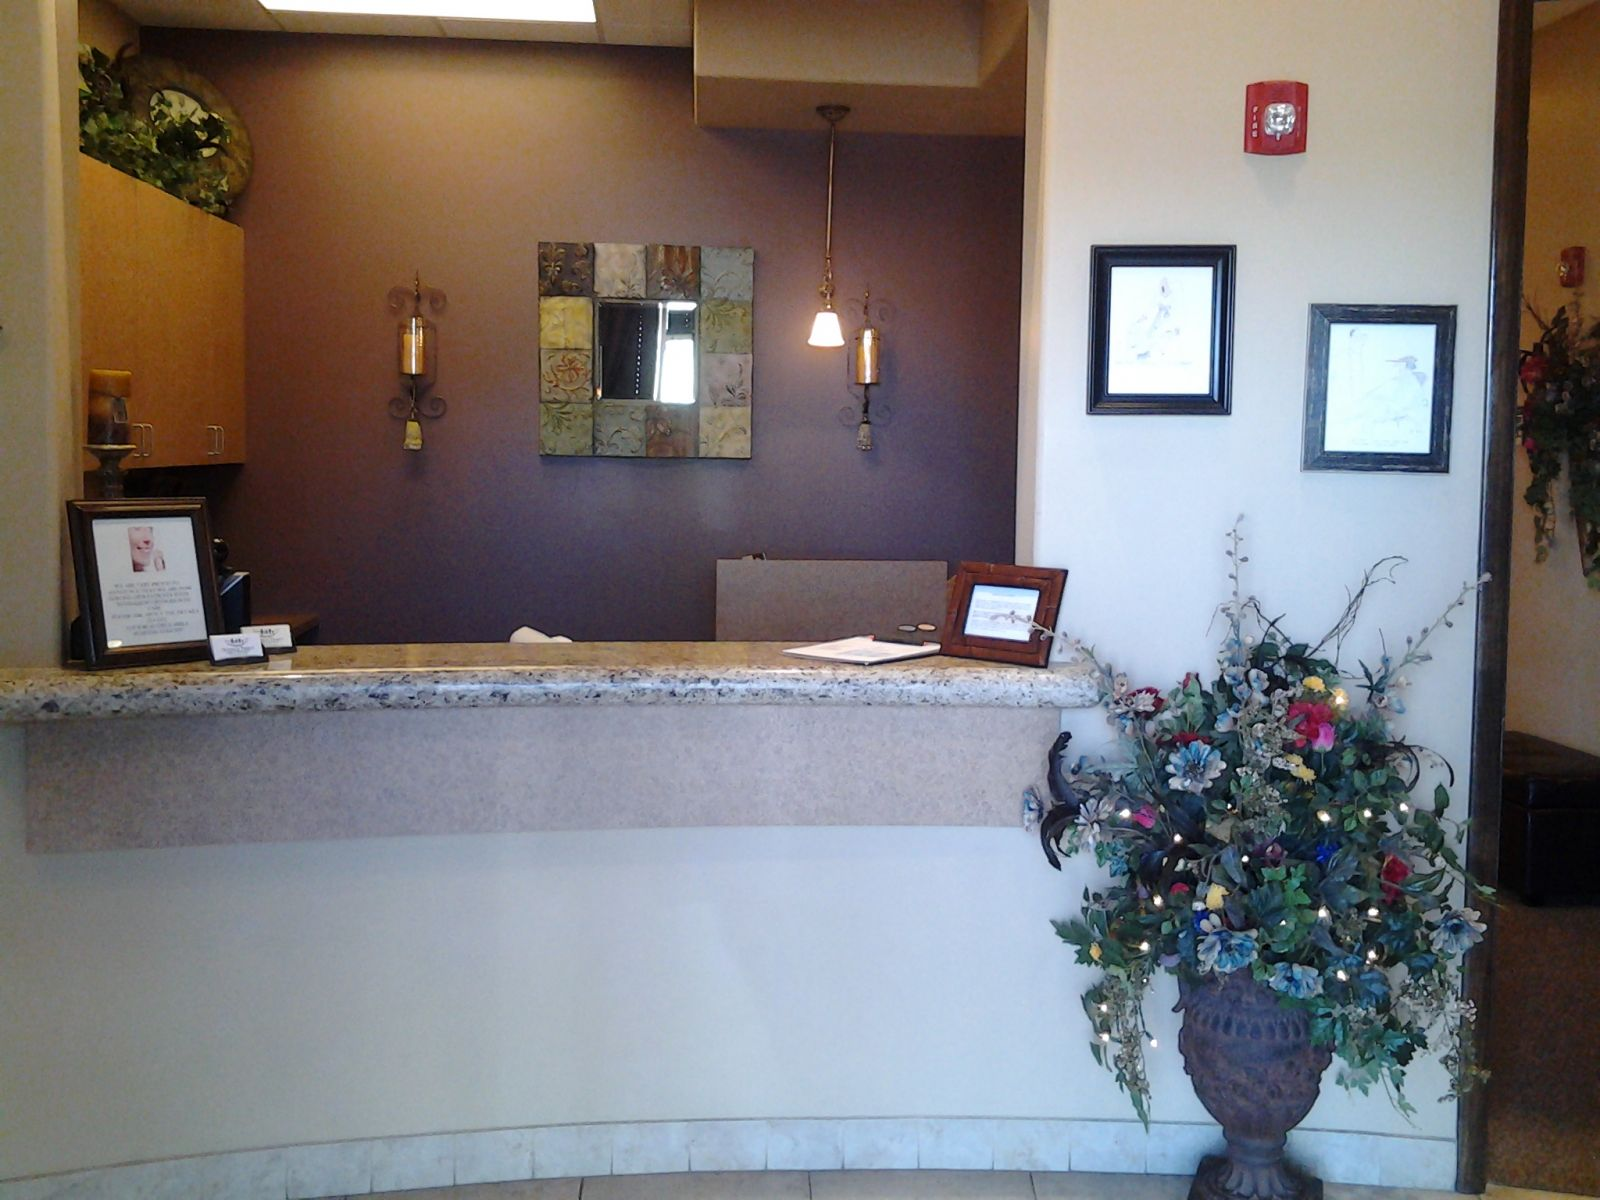 Dentist Office Reception Area San Tan Valley Queen Creek AZ